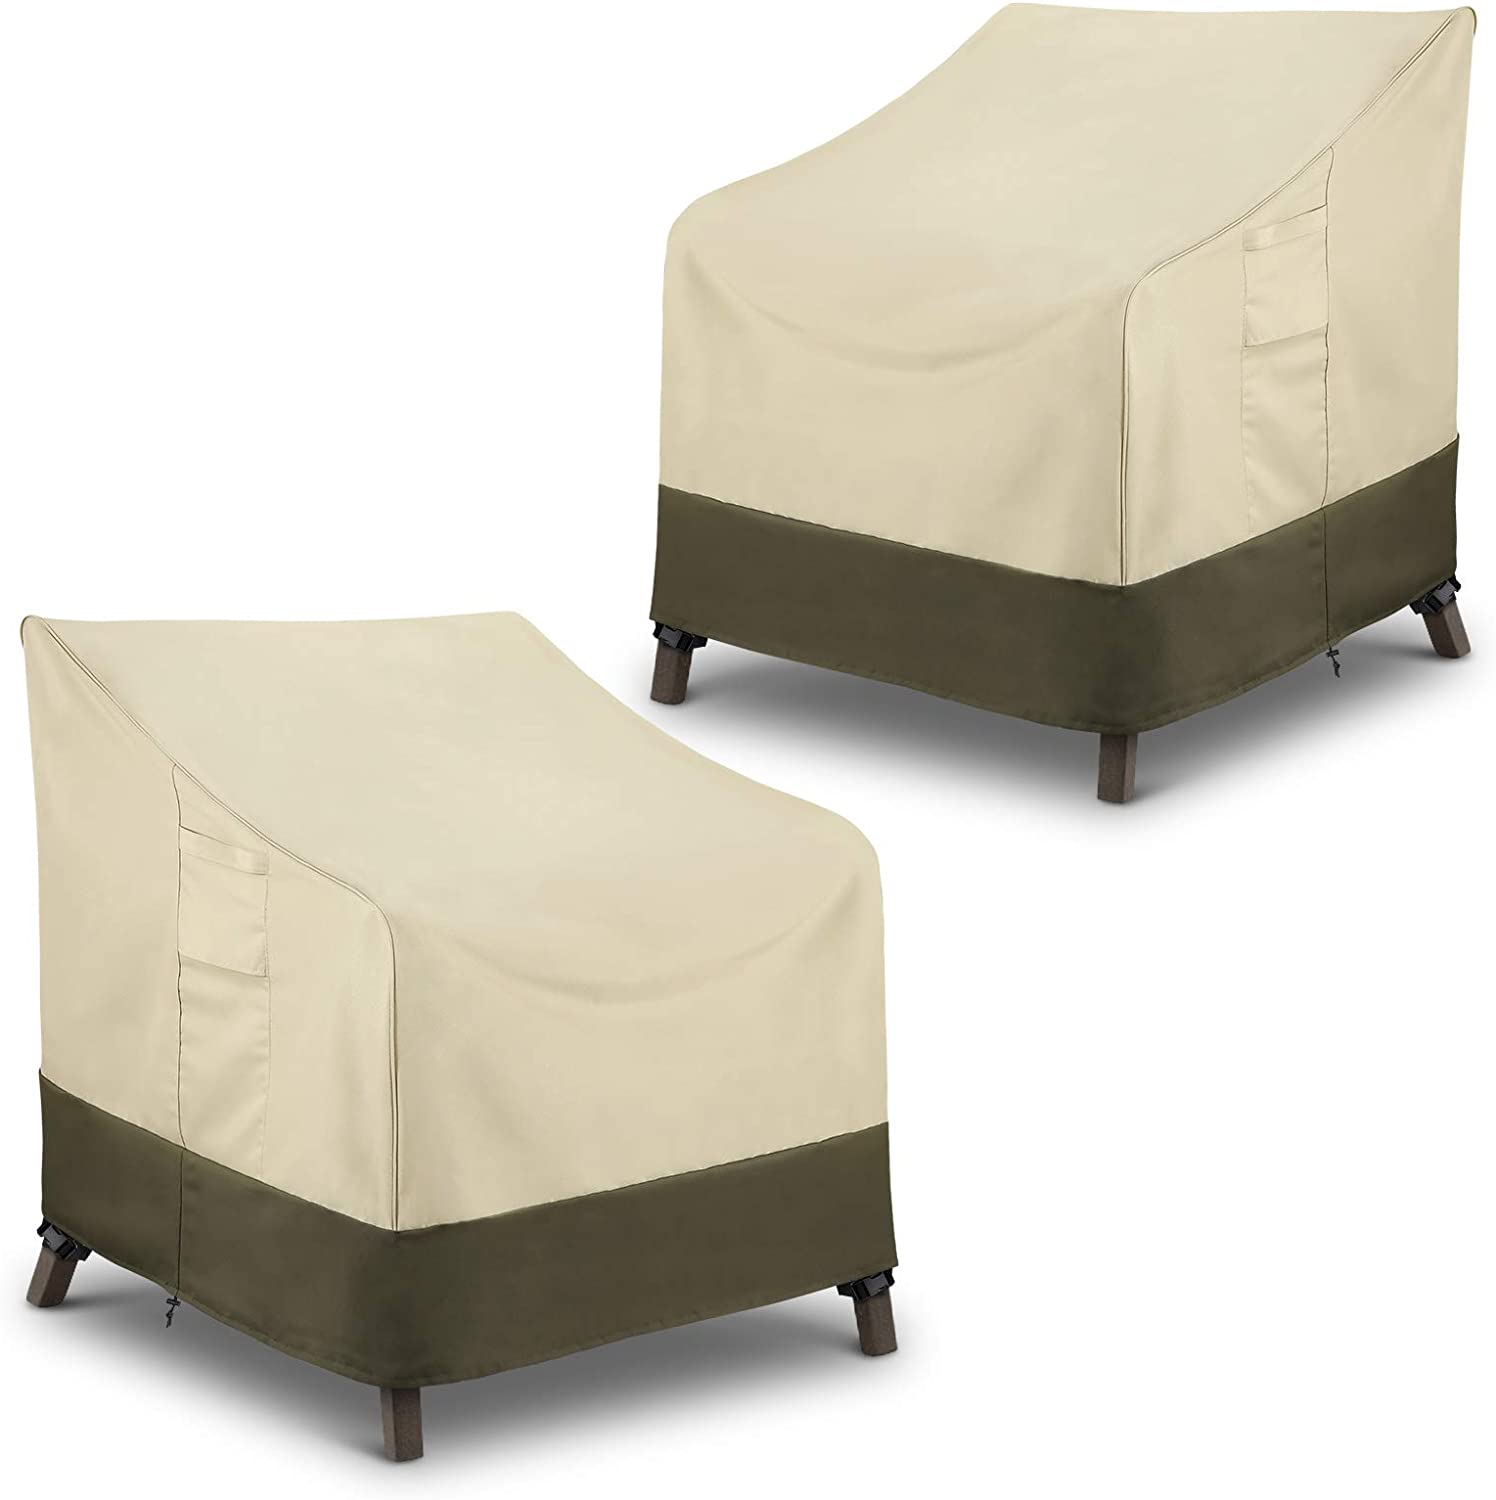 SunPatio High Back Patio Chair Covers, Waterproof Oversized Chair Covers, 600D Heavy Duty UV-Coated, Durable Rip Resistant, 2 Pack-38W x 32D x 36H inch, Beige & Olive